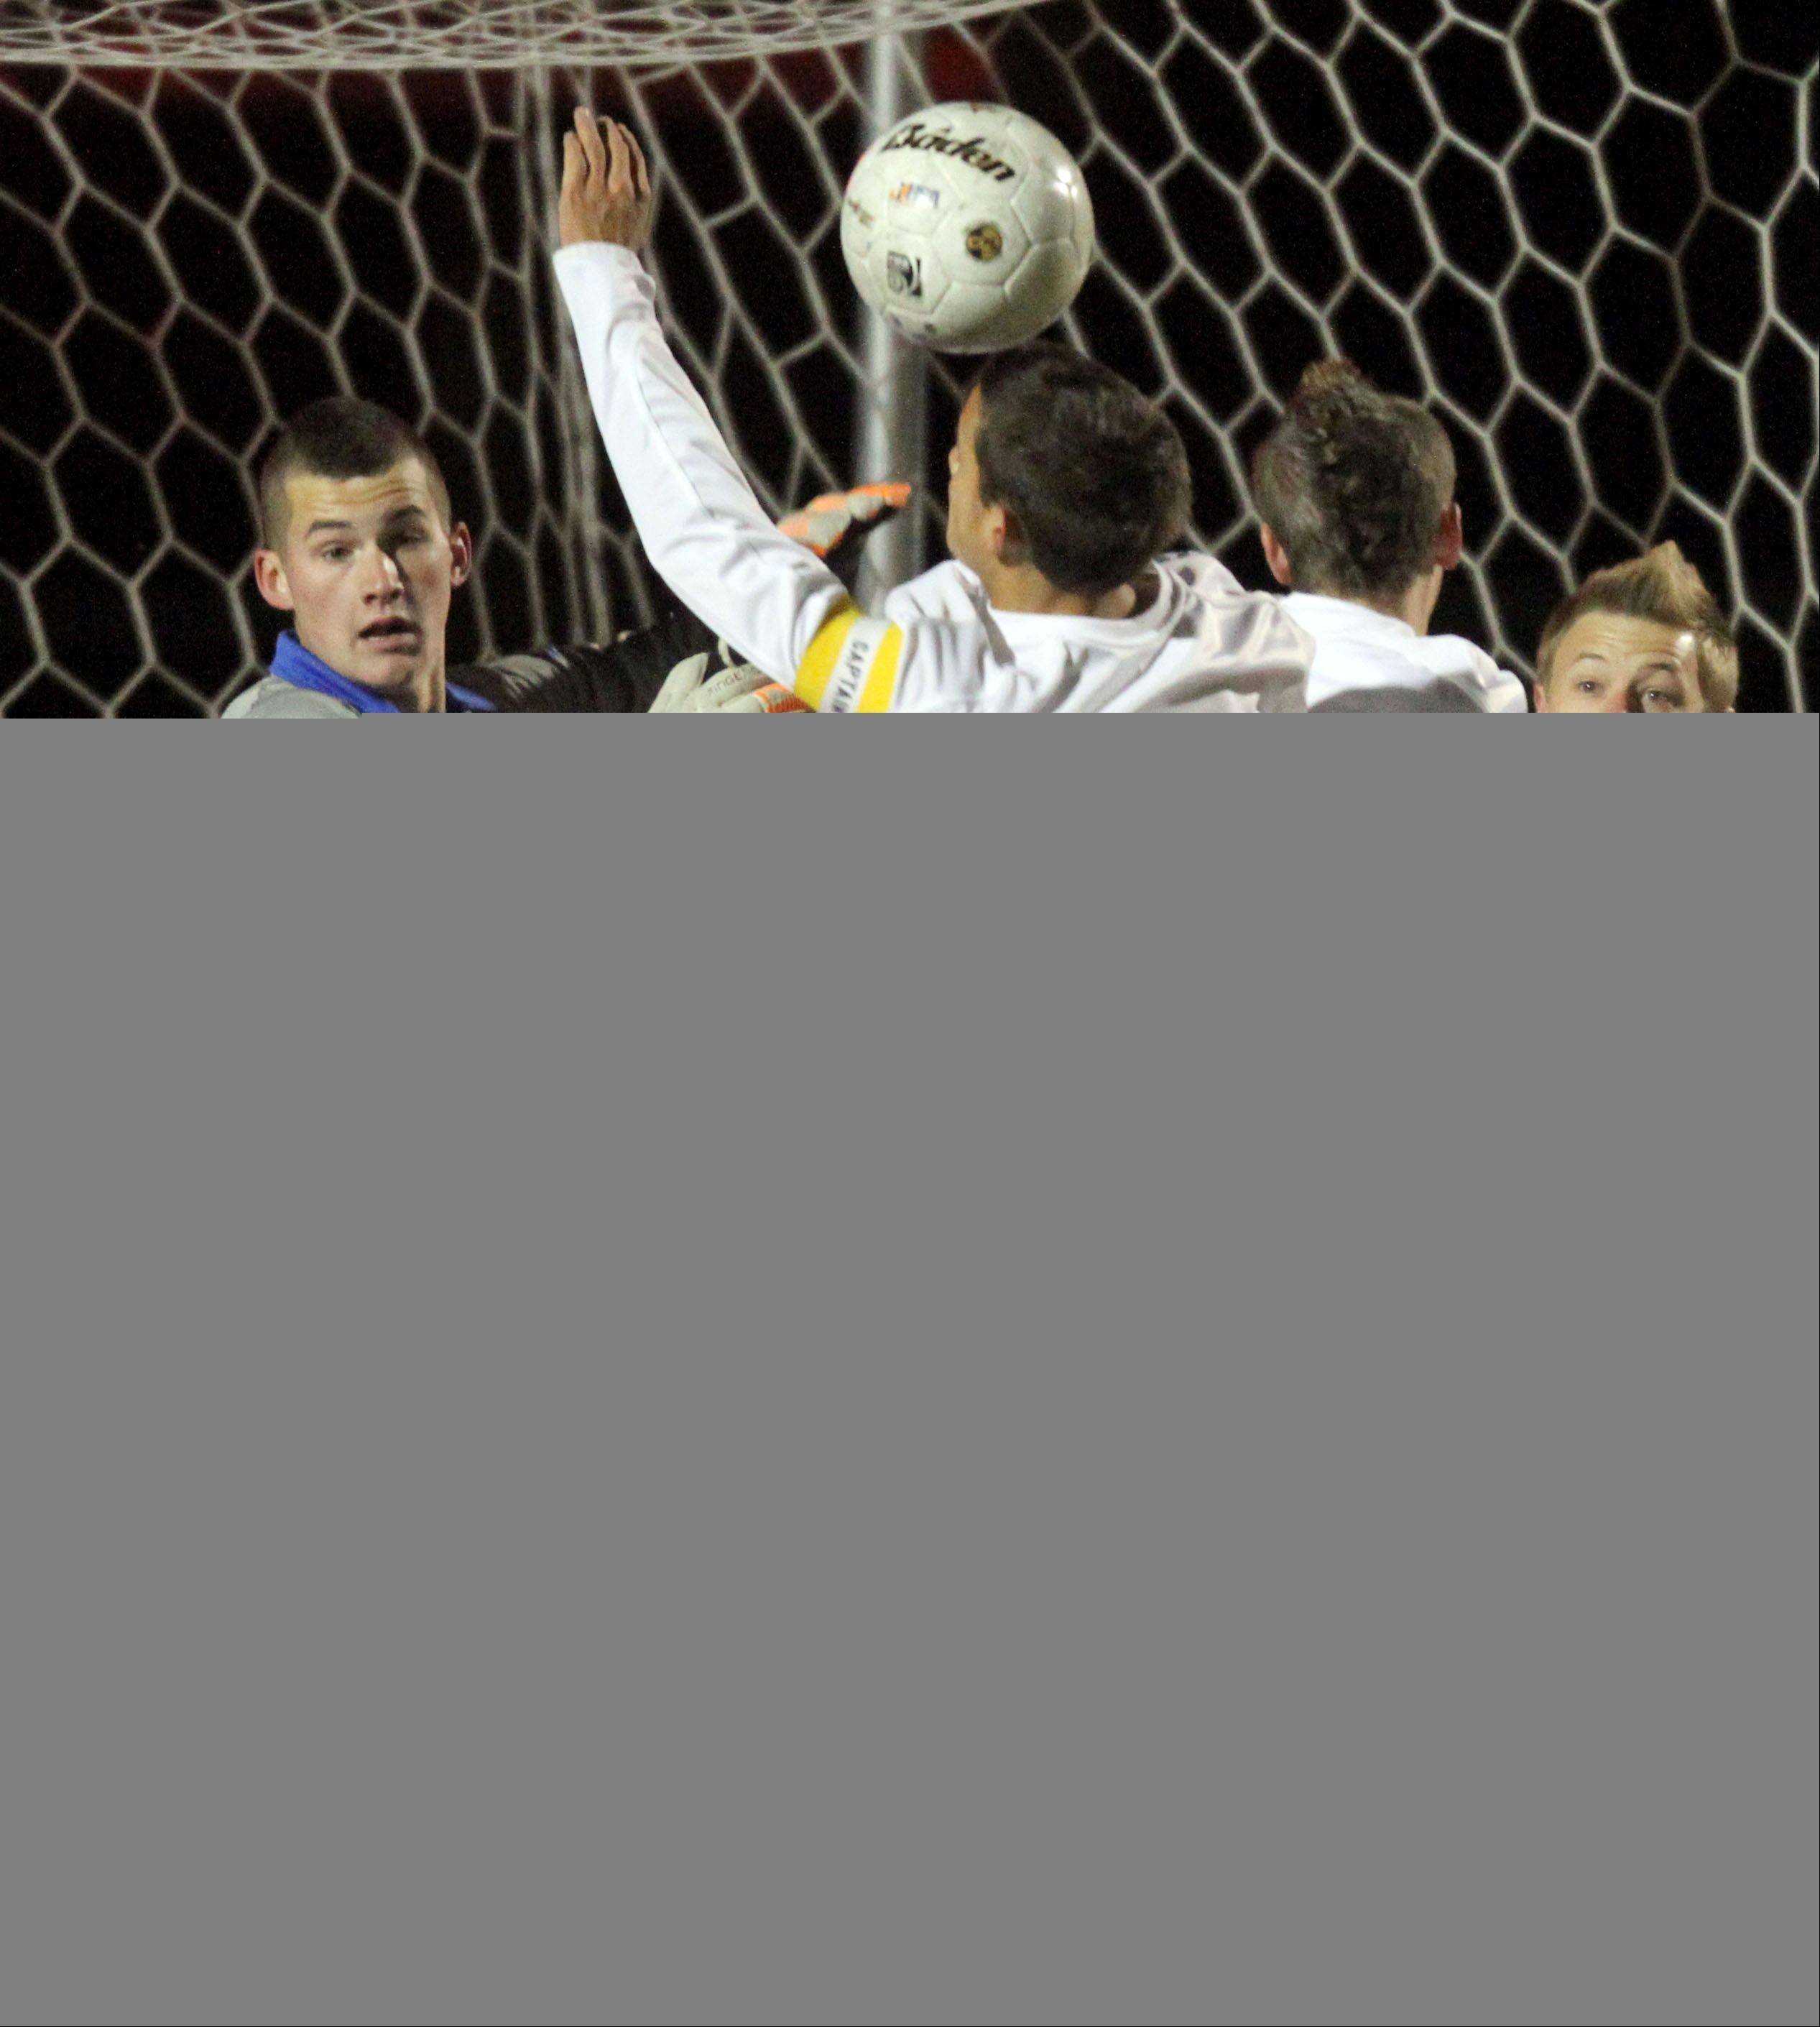 Warren goalie R.J. Hill tires to keep an eye on the ball as players bunch up in front of the net during super sectional soccer action Tuesday night at Barrington High School.